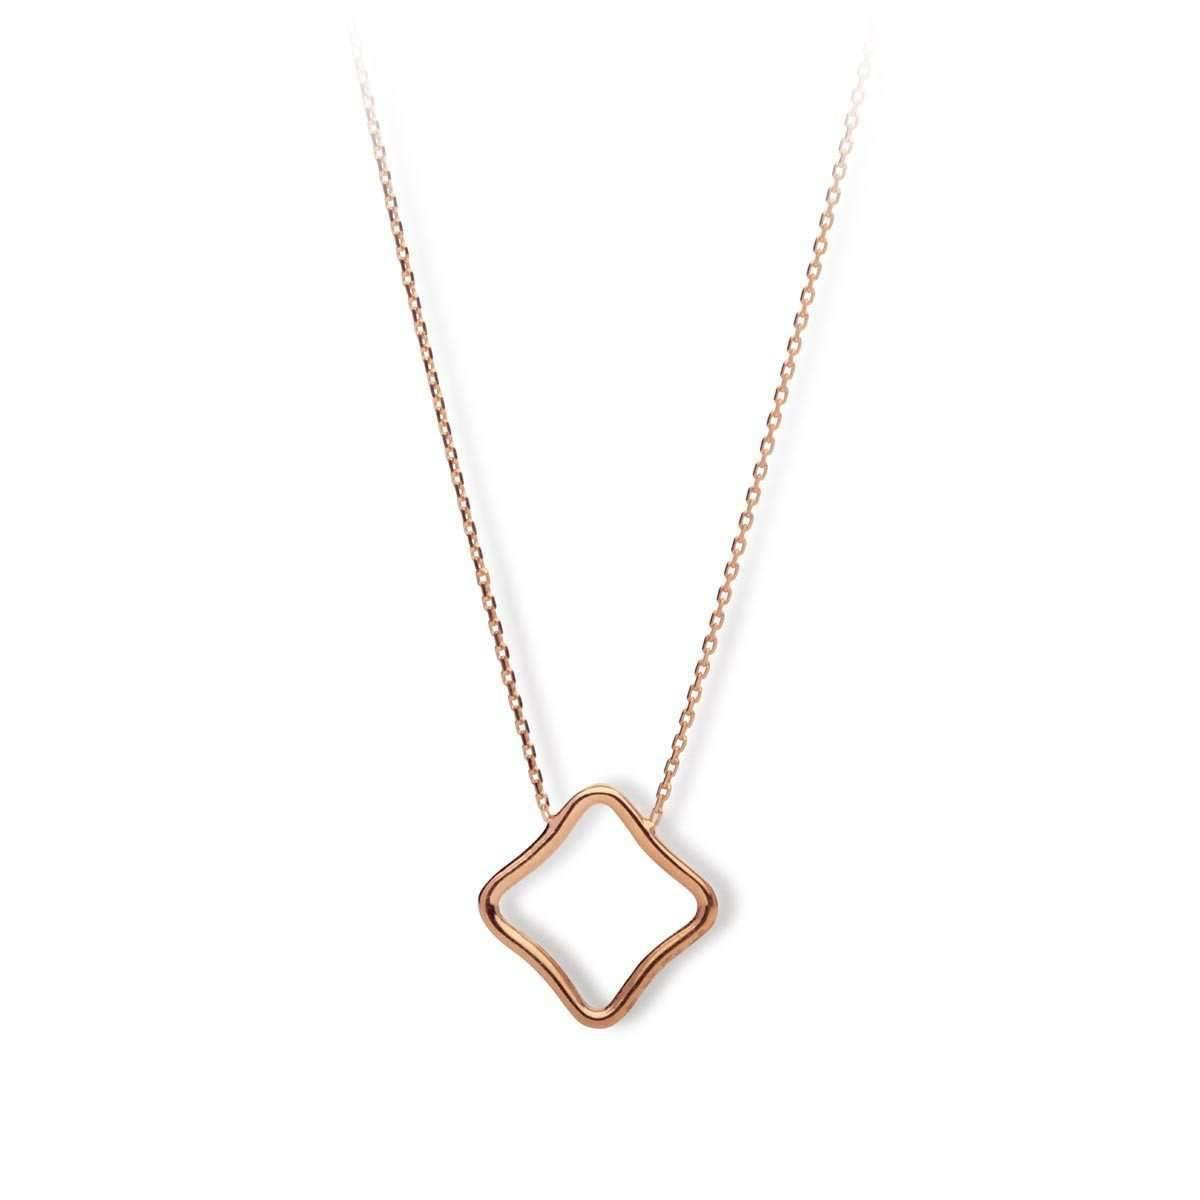 Origami Jewellery Sterling Silver & Gold Plate Pegaze Circle Origami Necklace VidAfLs2WR